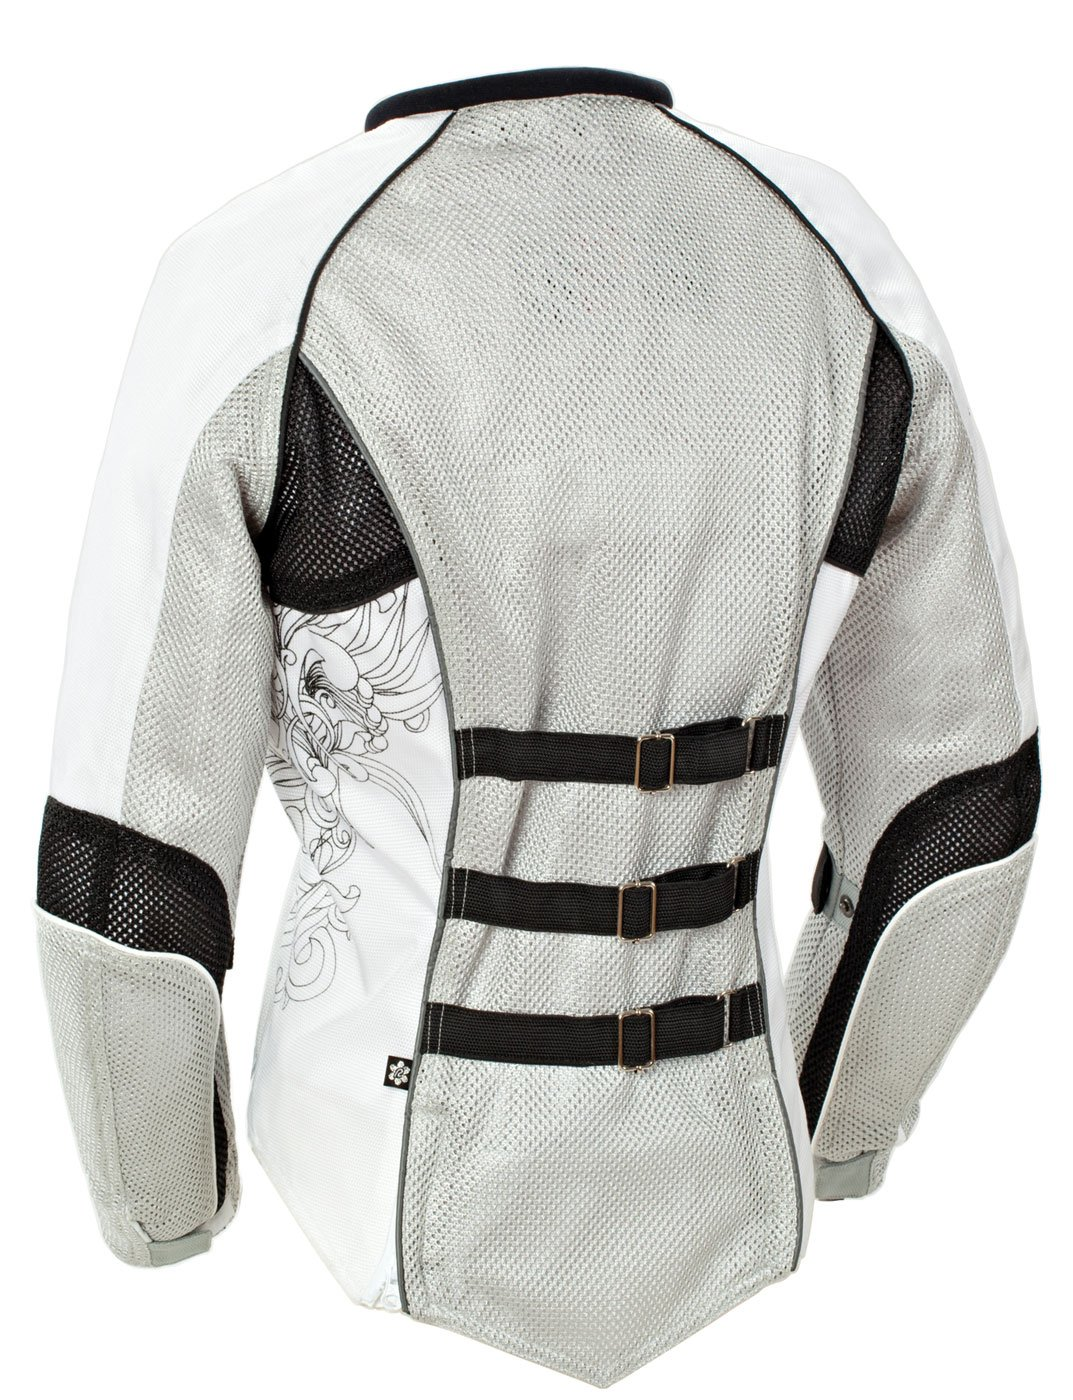 Joe Rocket Cleo 2.2 Women's Mesh Motorcycle Riding Jacket (Silver/Black/White, XXX-Large) by Joe Rocket (Image #2)